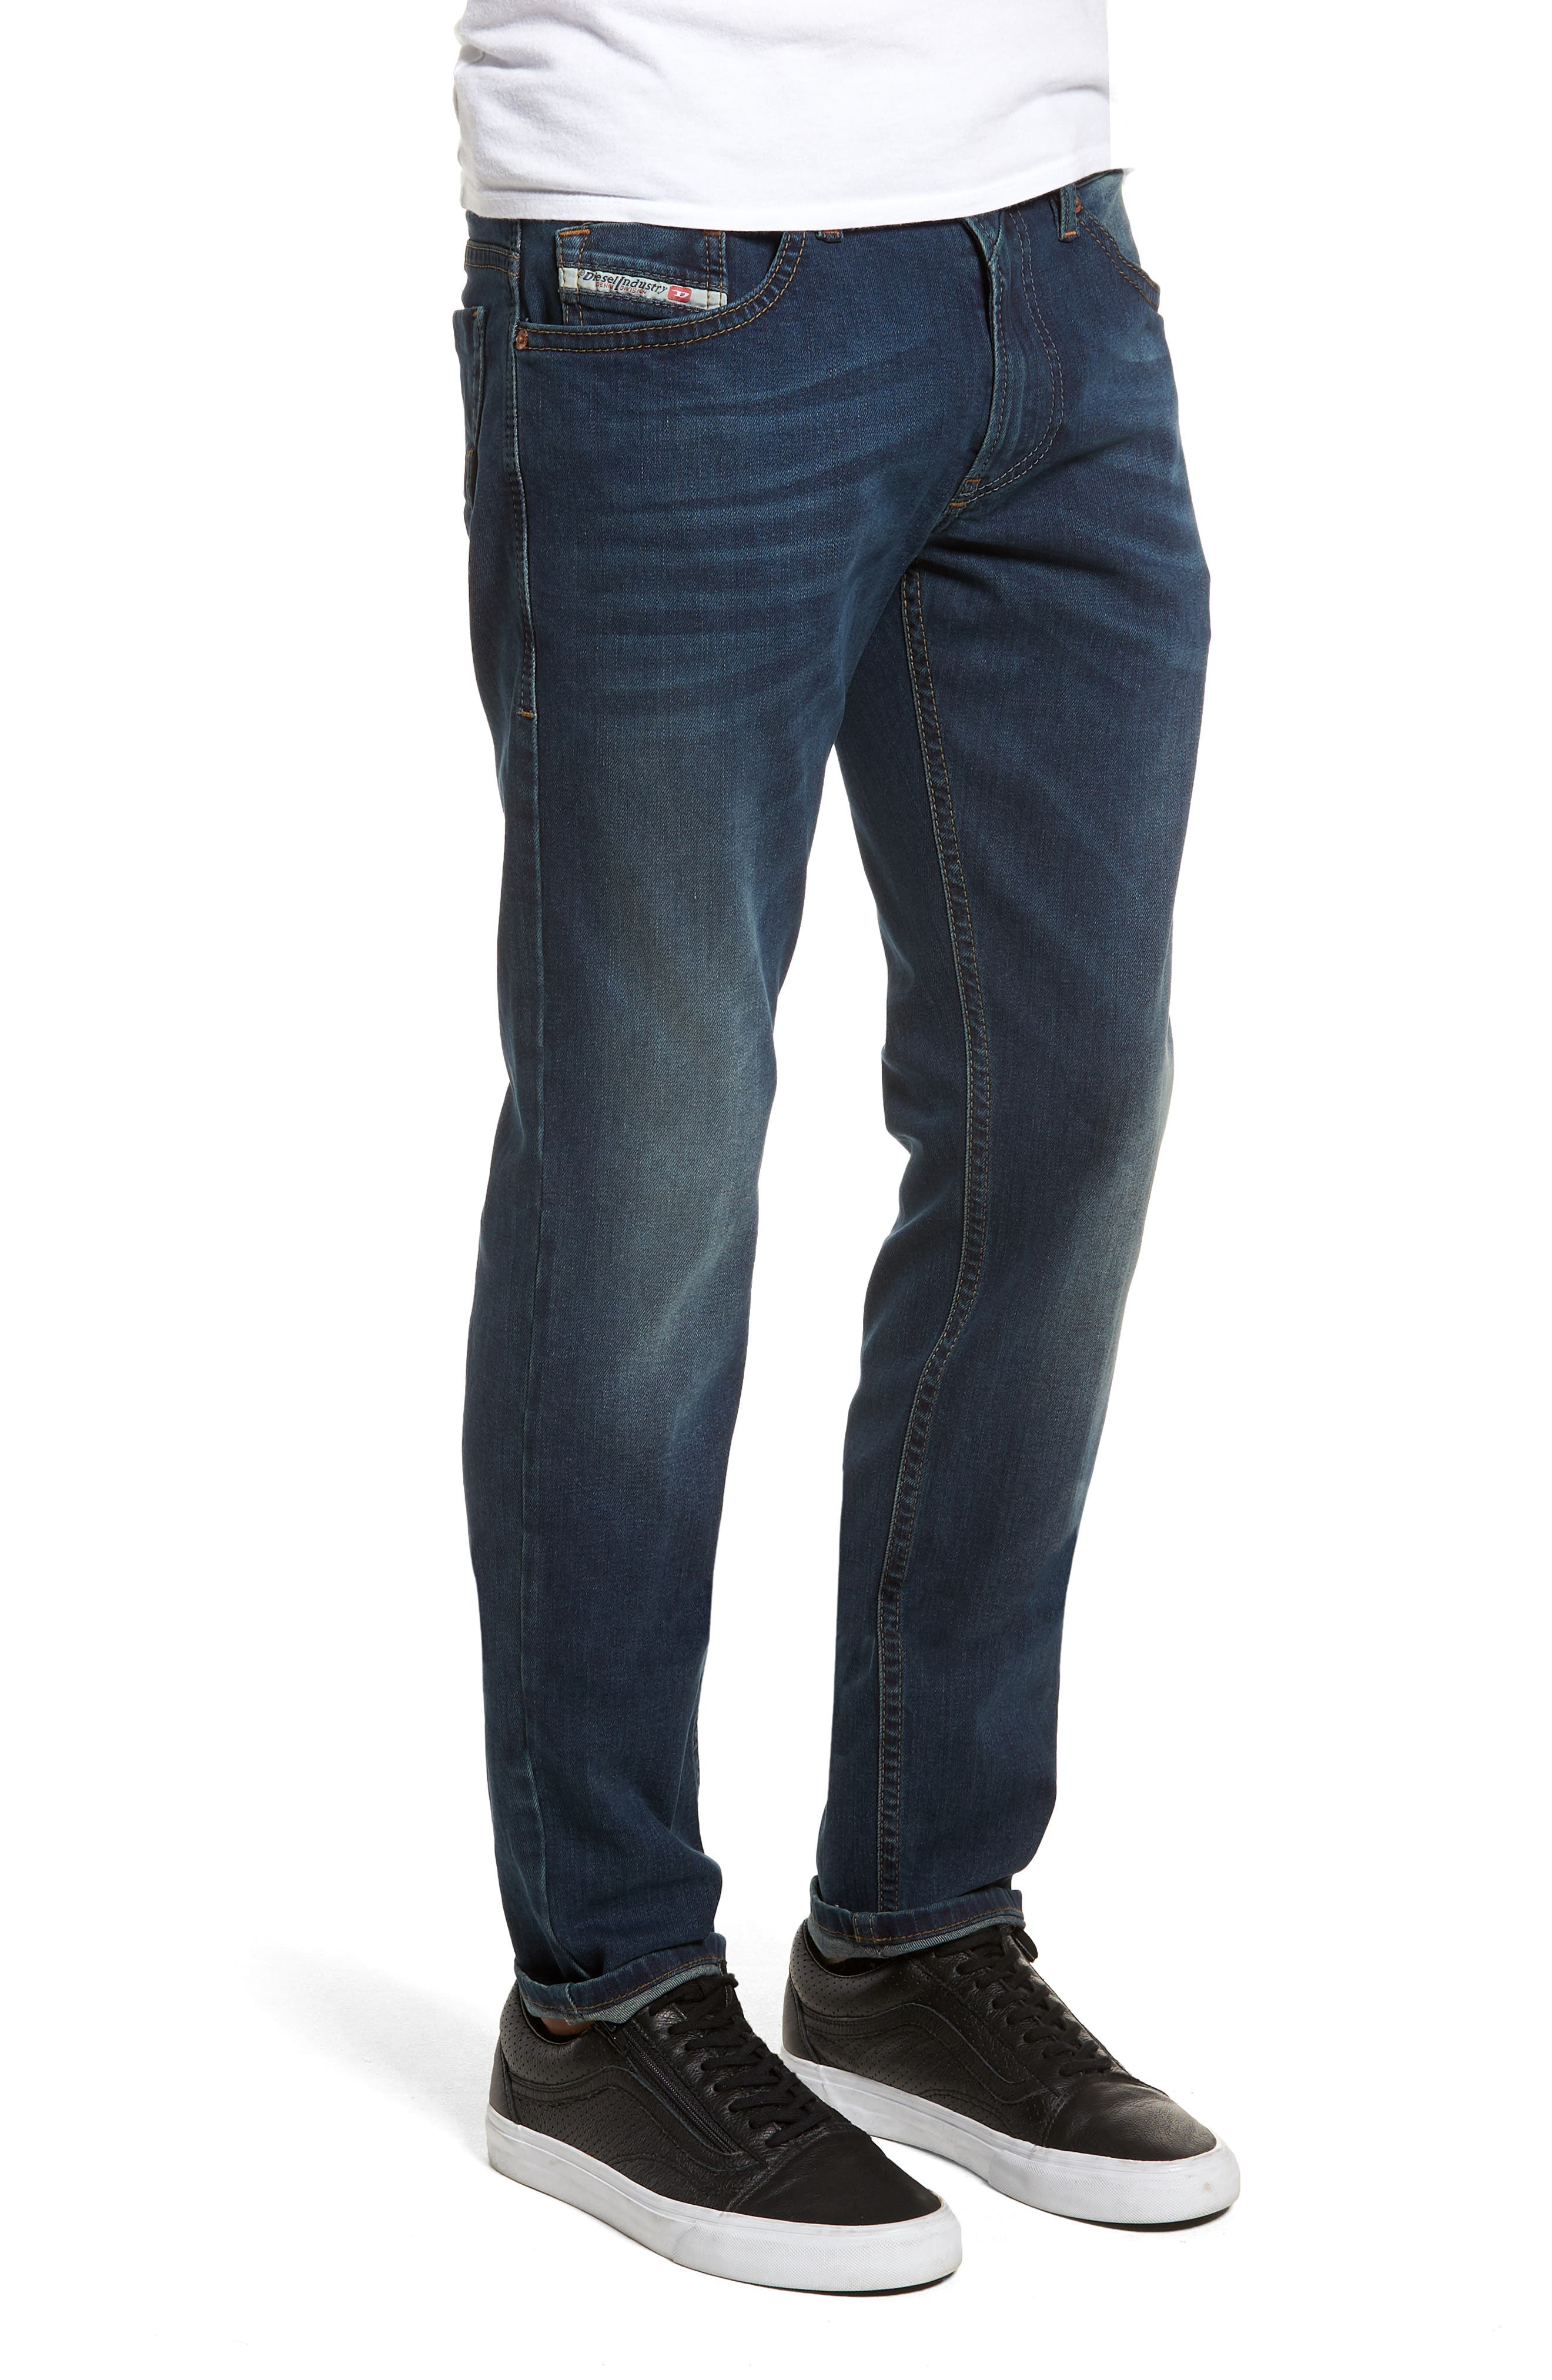 Thommer Skinny Fit Jeans,                             Alternate thumbnail 3, color,                             BLUE